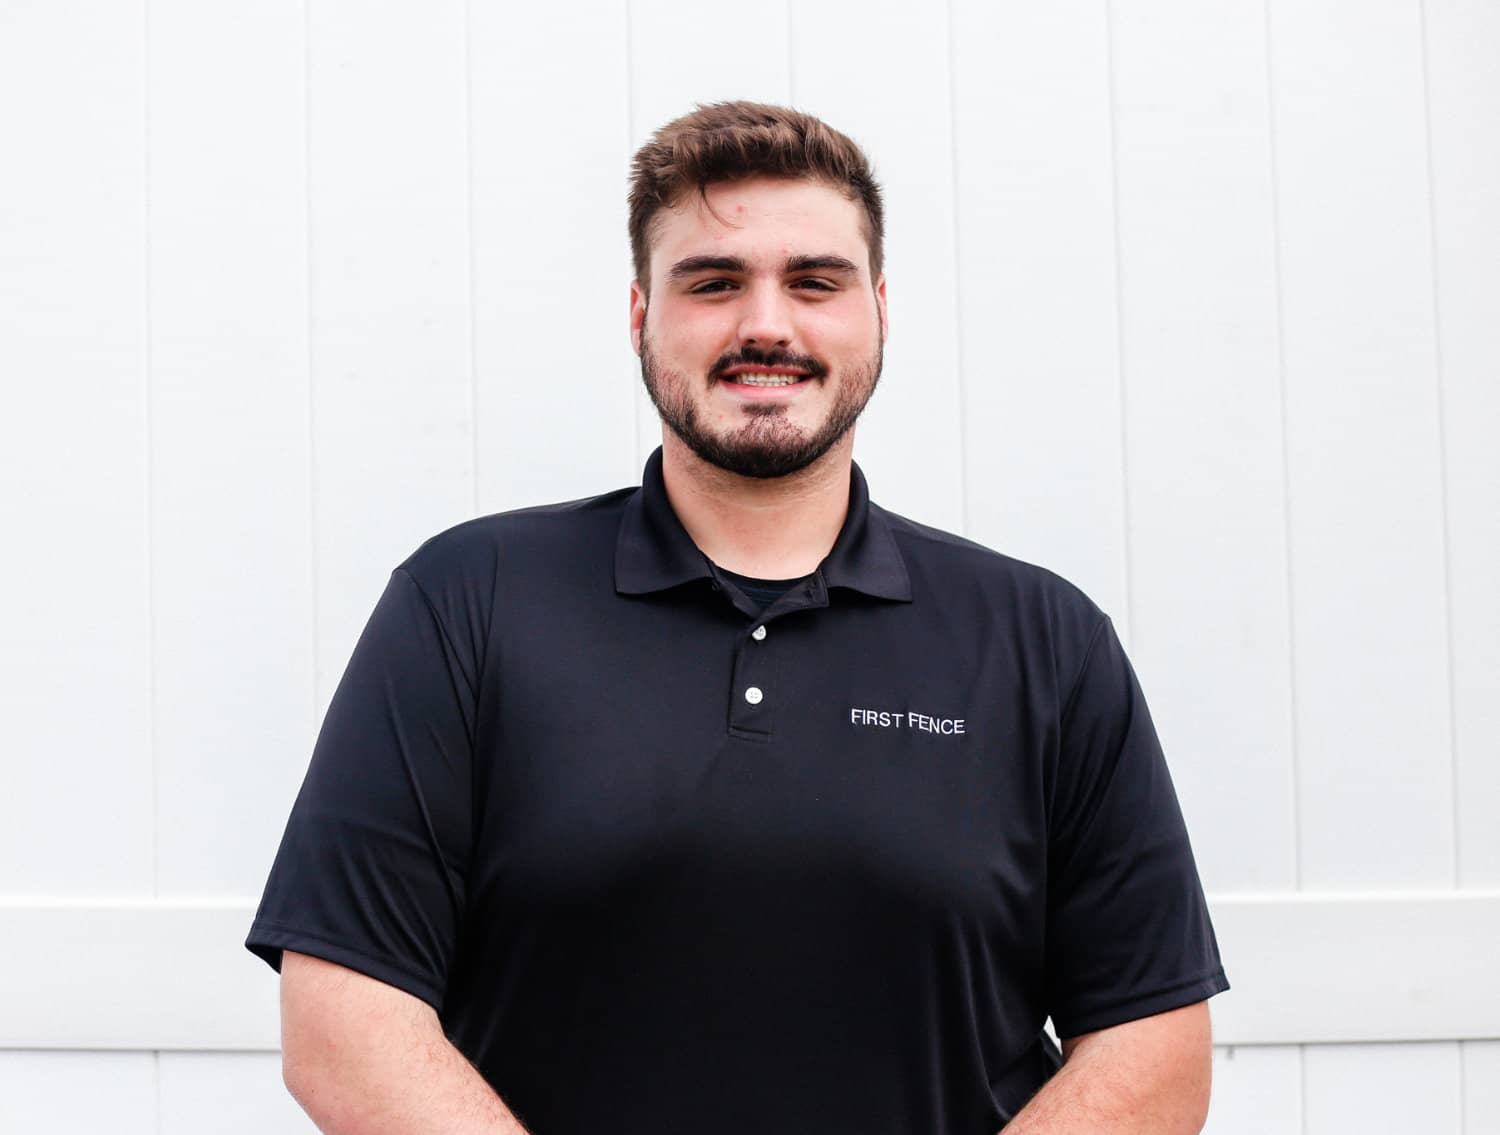 Photo of James Trout, Sales Consultant at First Fence Company